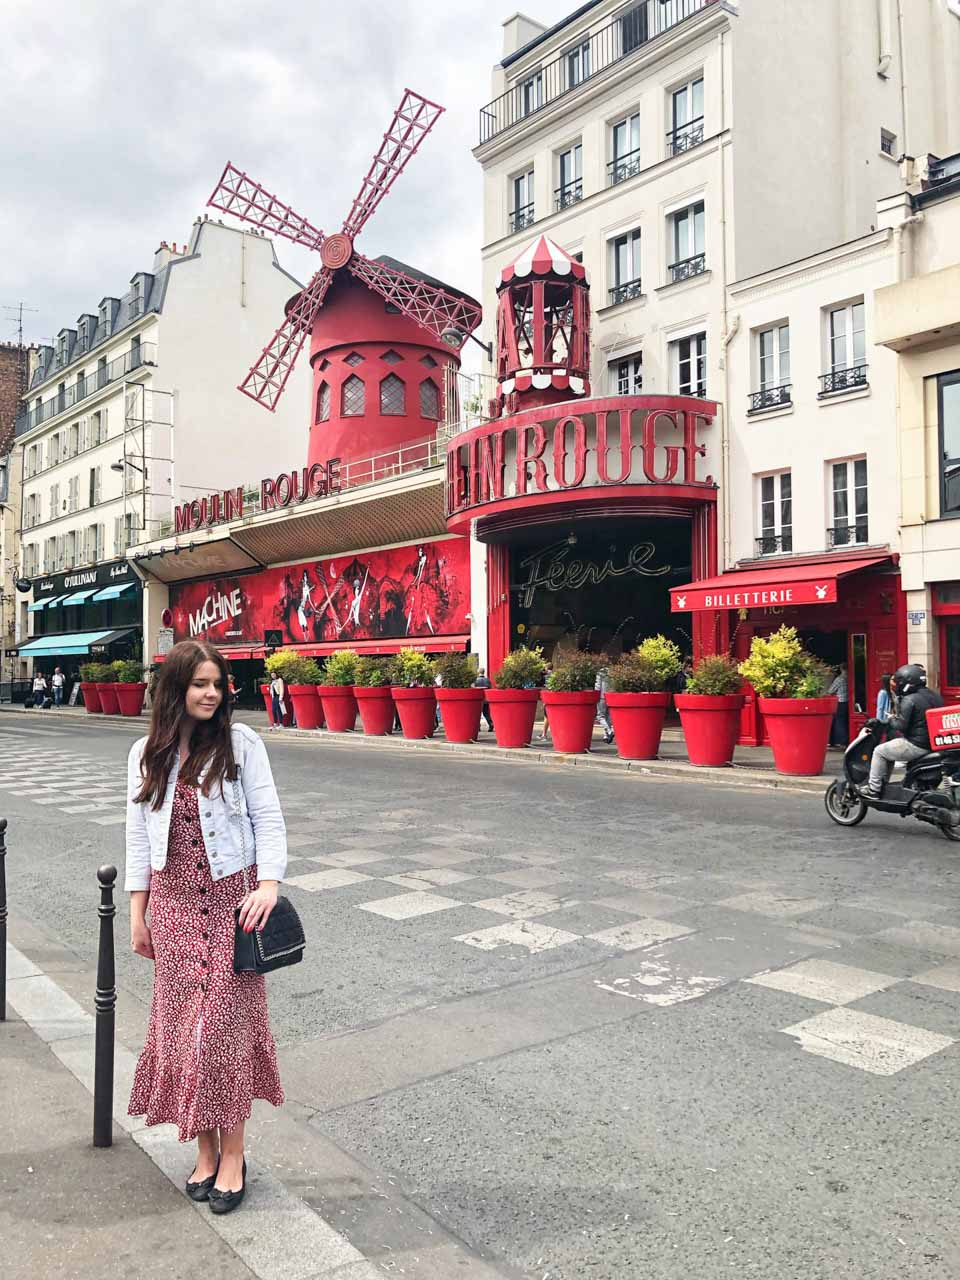 A girl in a red dress standing in front of the Moulin Rouge in Paris